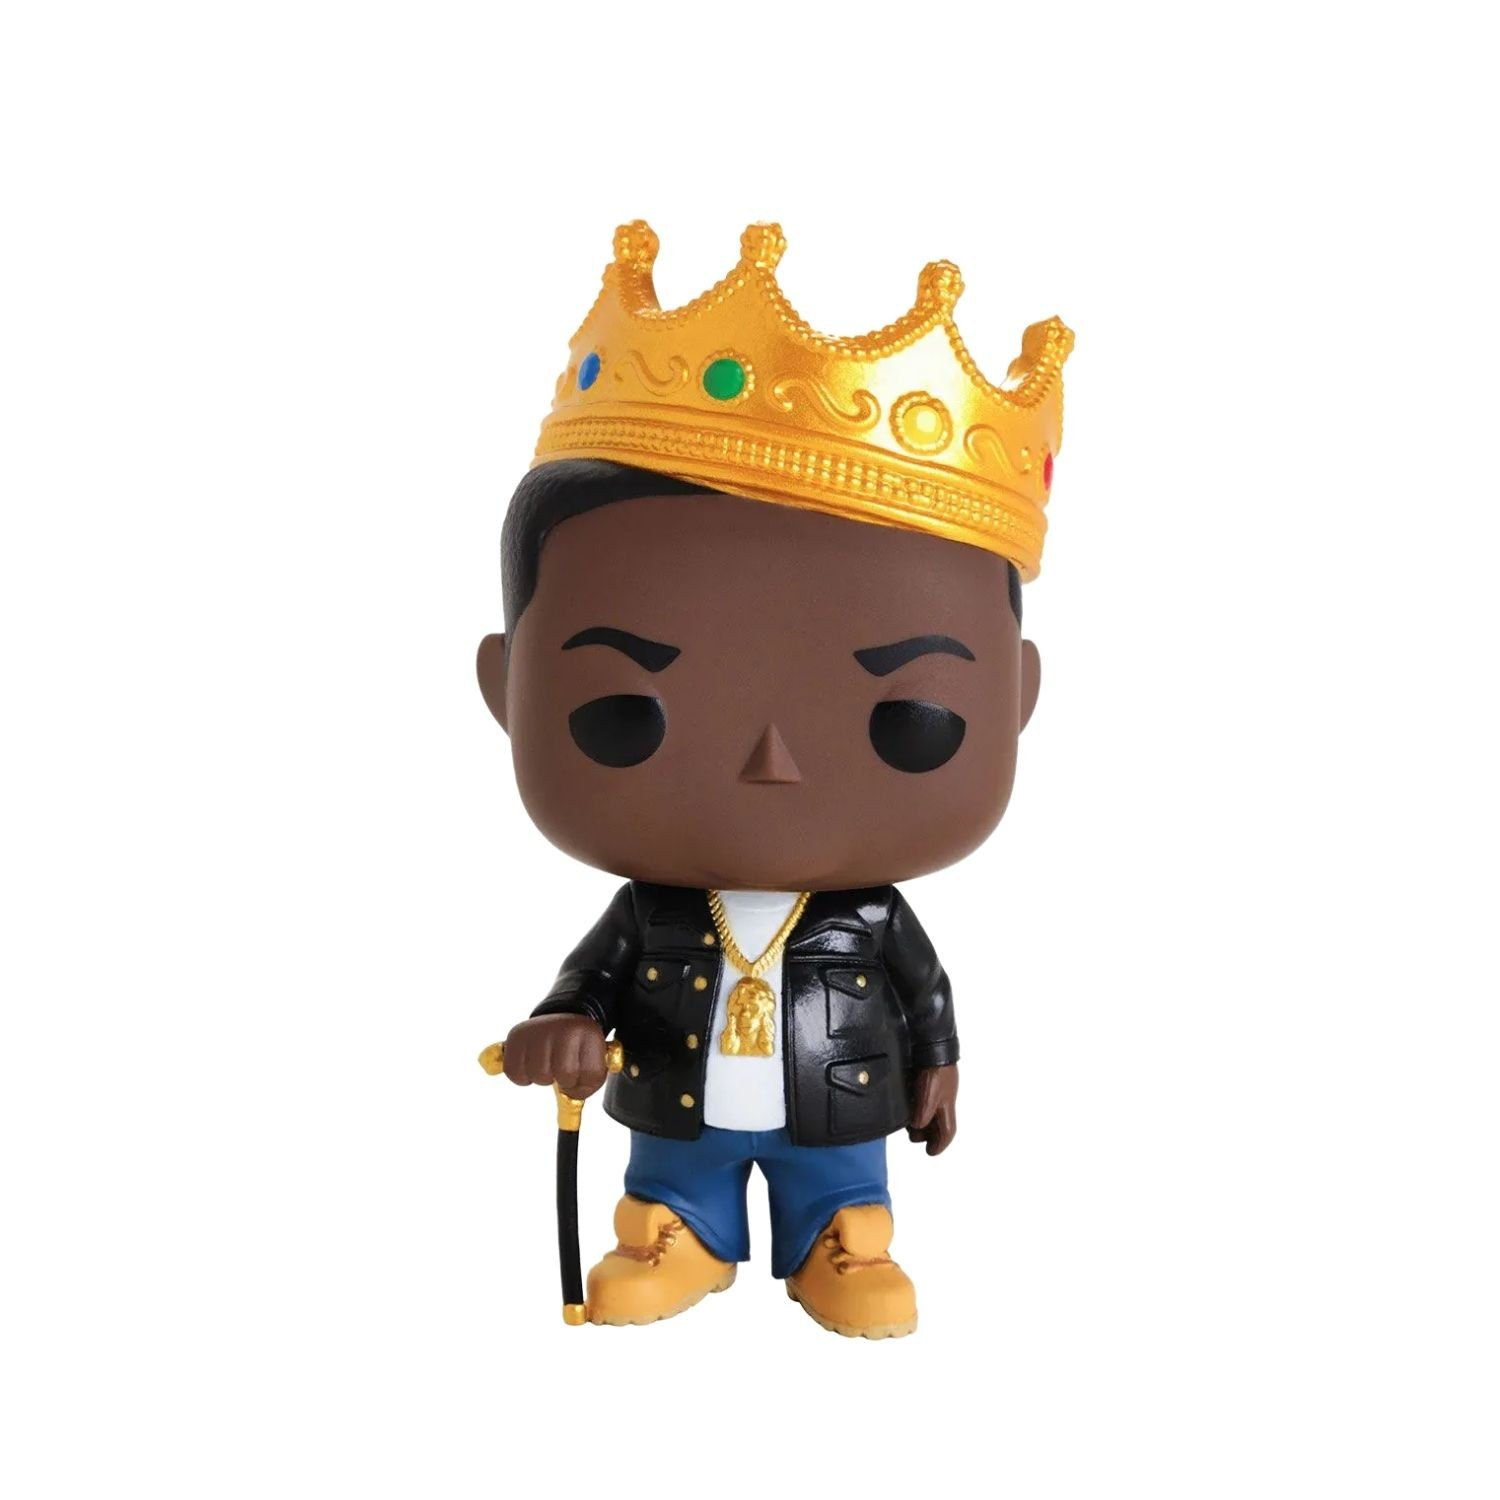 Funko Pop The Notorious B.I.G com Coroa #77  - Game Land Brinquedos